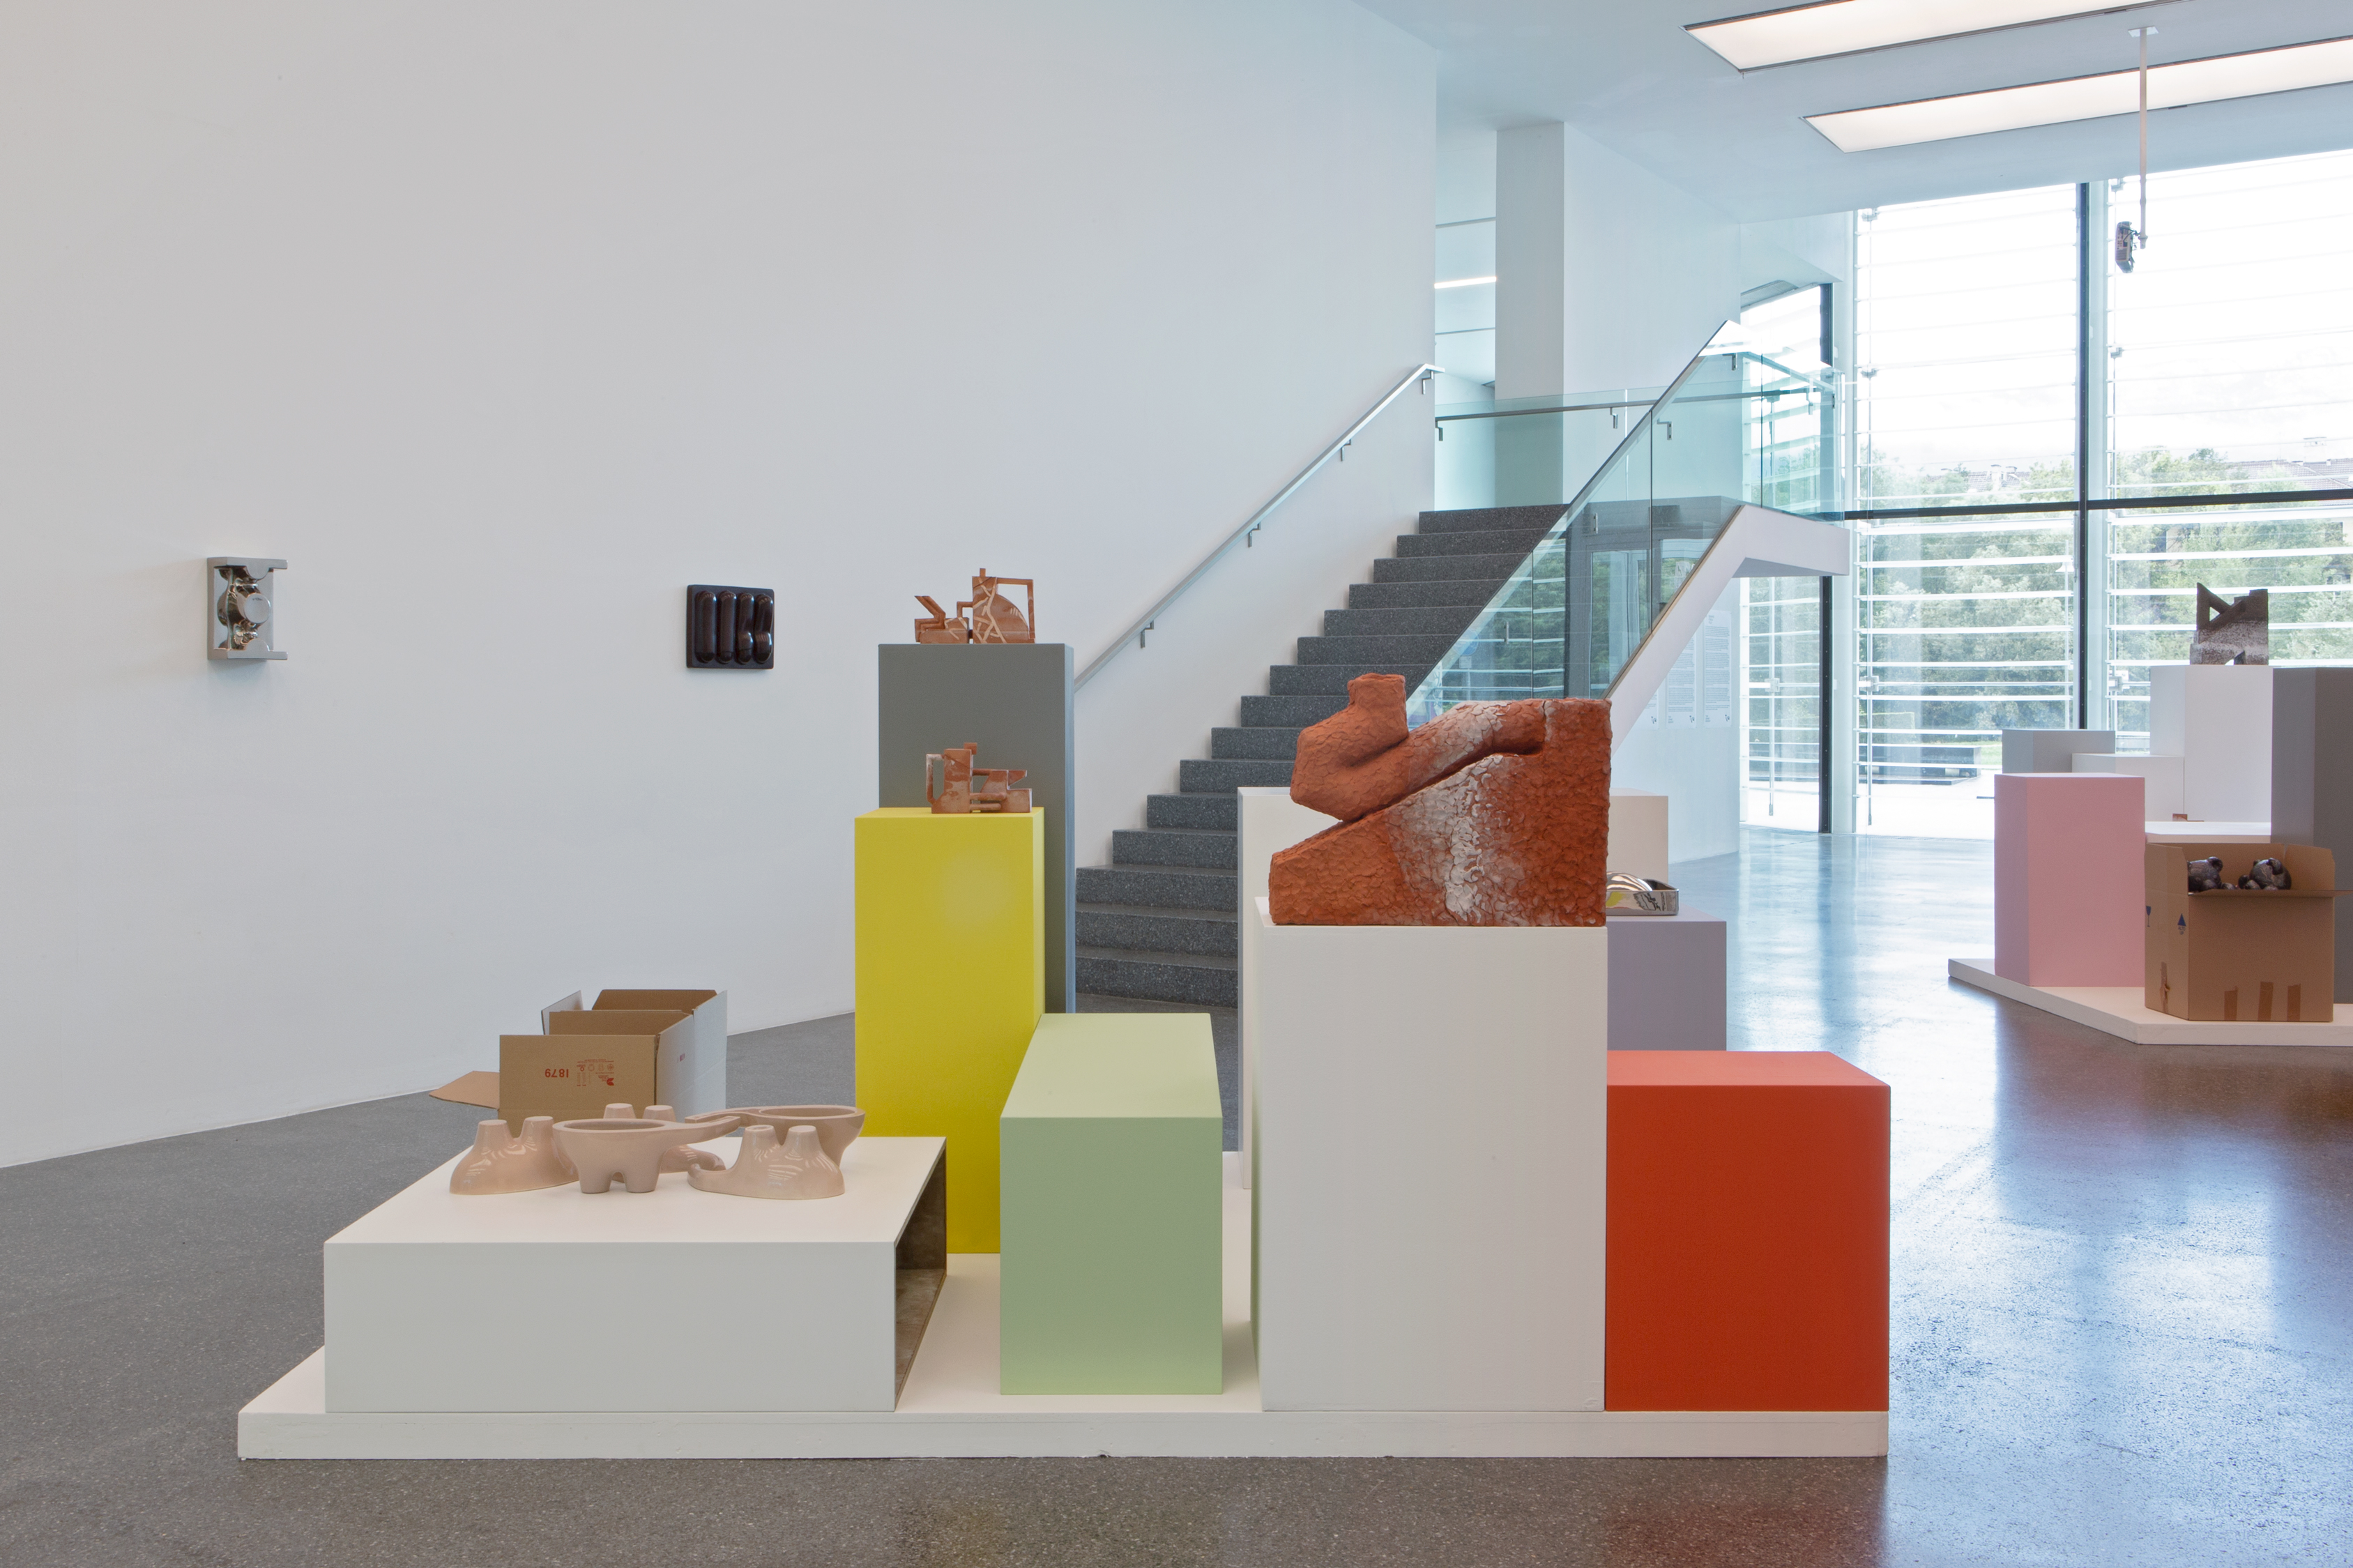 Installation View, Noi – DESHAYES, FOLLY, STURLA, with exhibition design by Giles Round, 2019, Bolzano, Italy